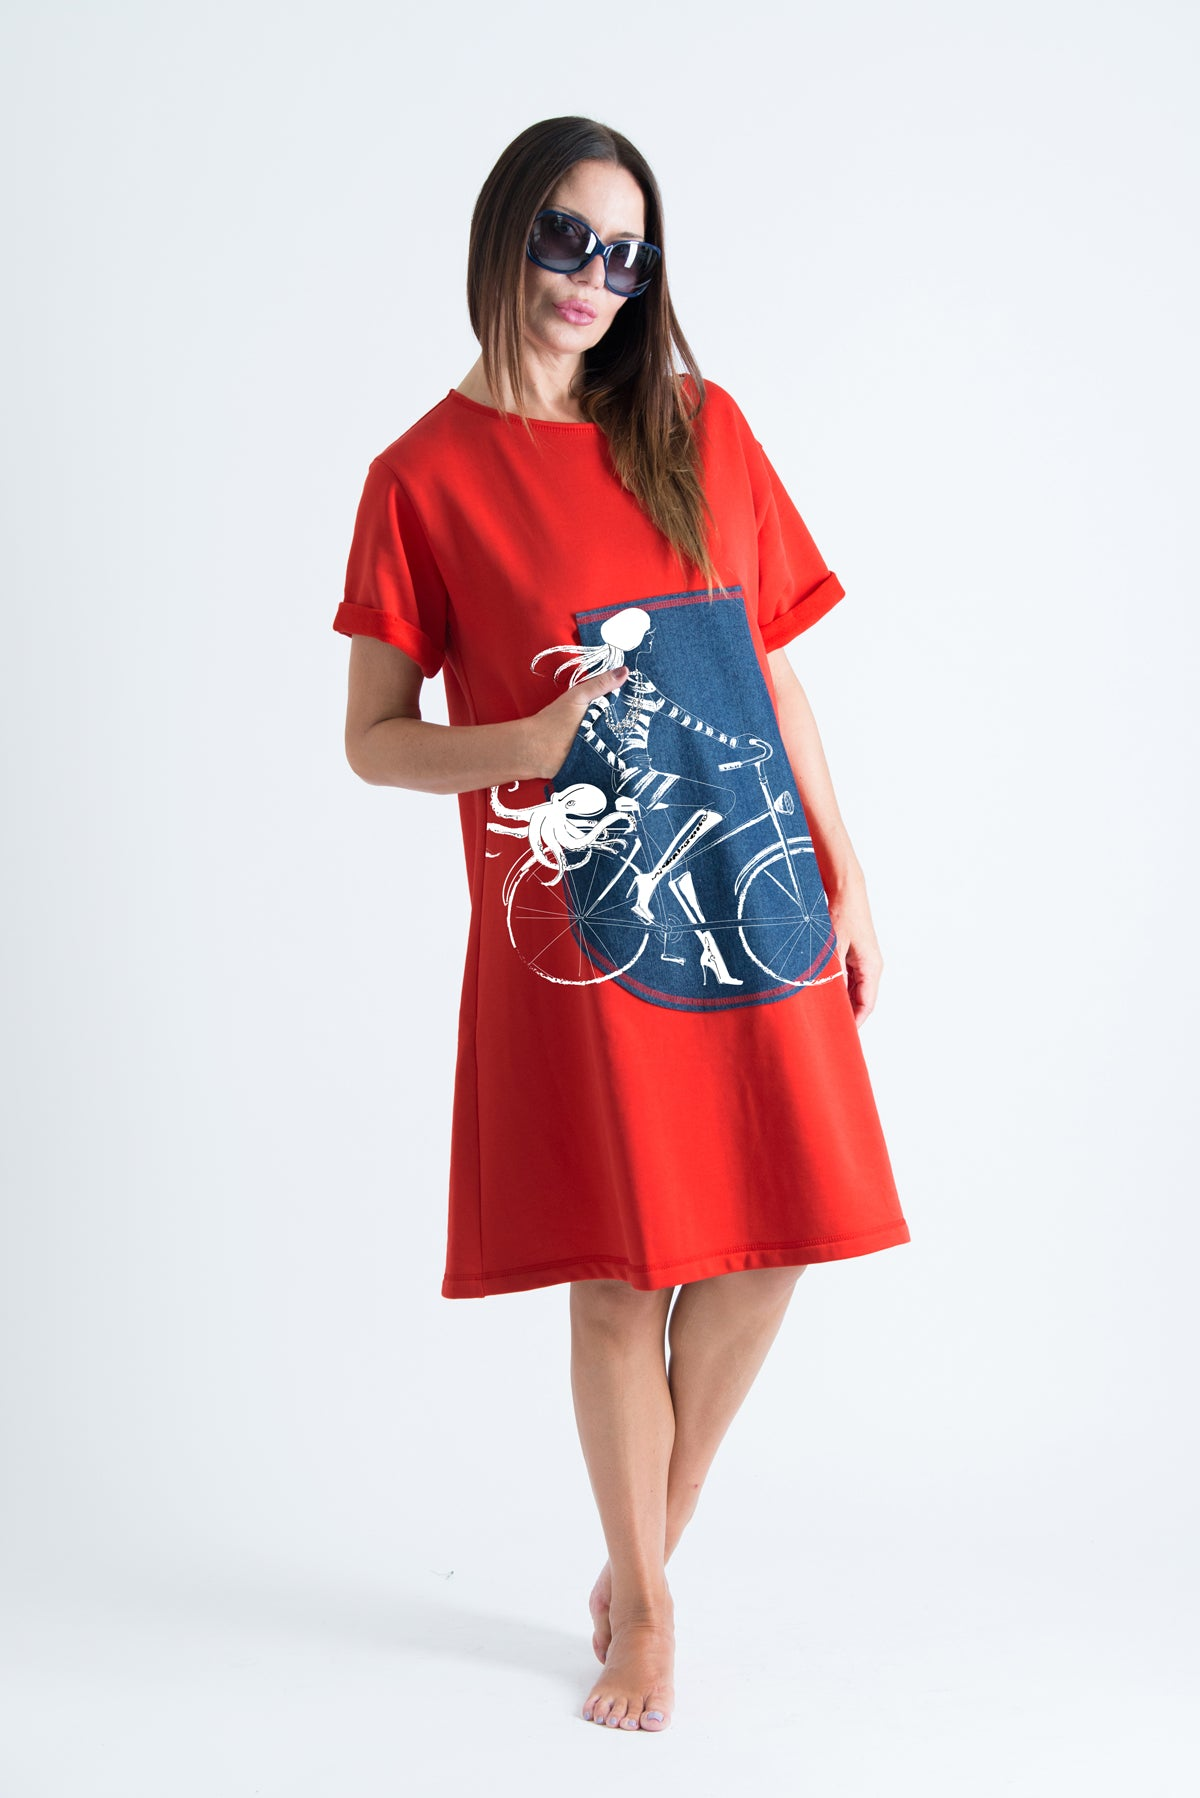 Red Sport Spring Cotton Midi Dress, Summer Red Casual Printed Dress